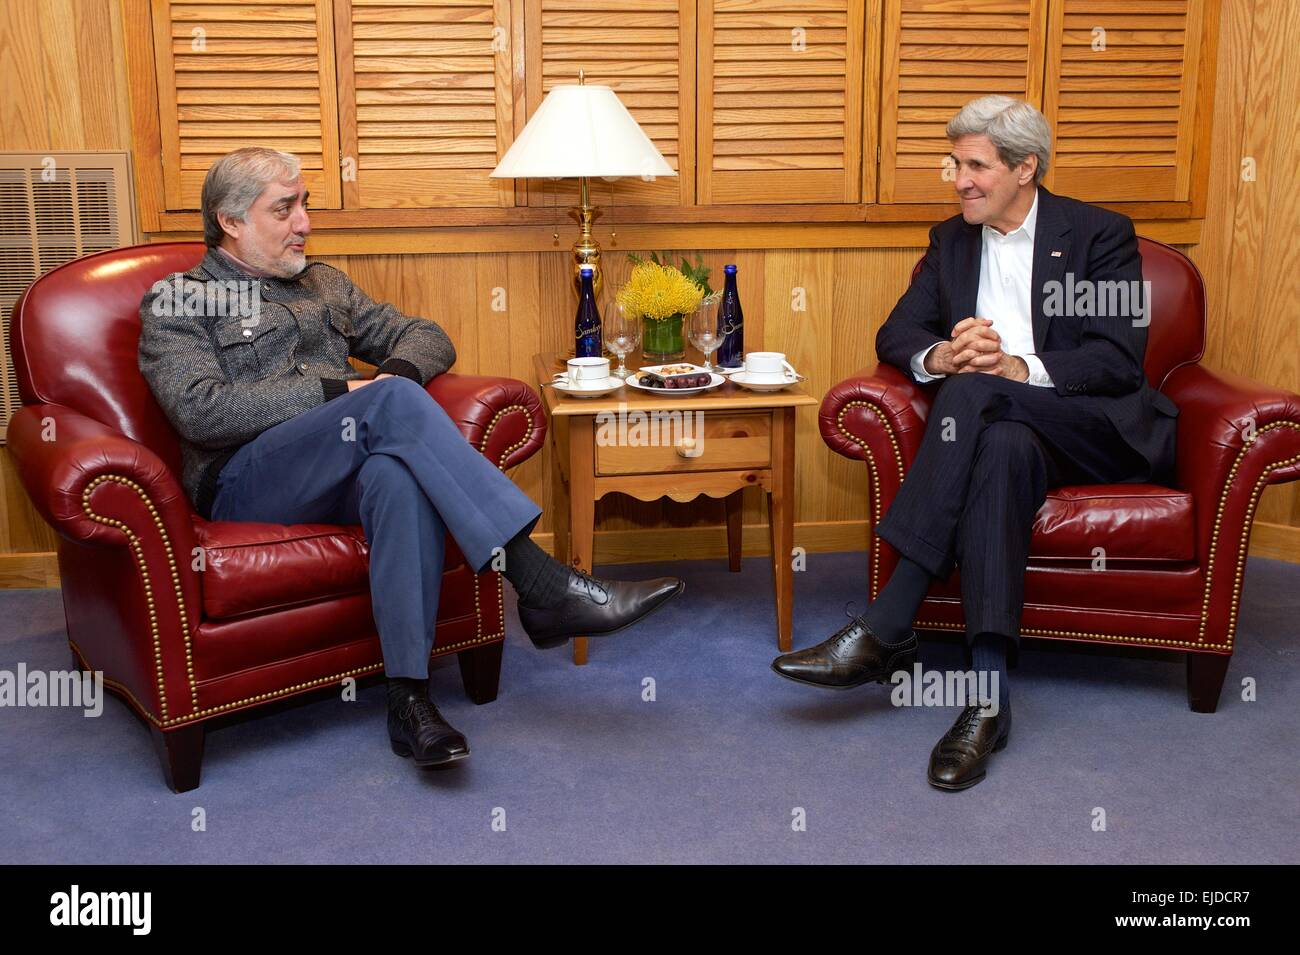 US Secretary of State John Kerry meets with Afghan Chief Executive Abdullah Abdullah during U.S.-Afghan dialogues - Stock Image